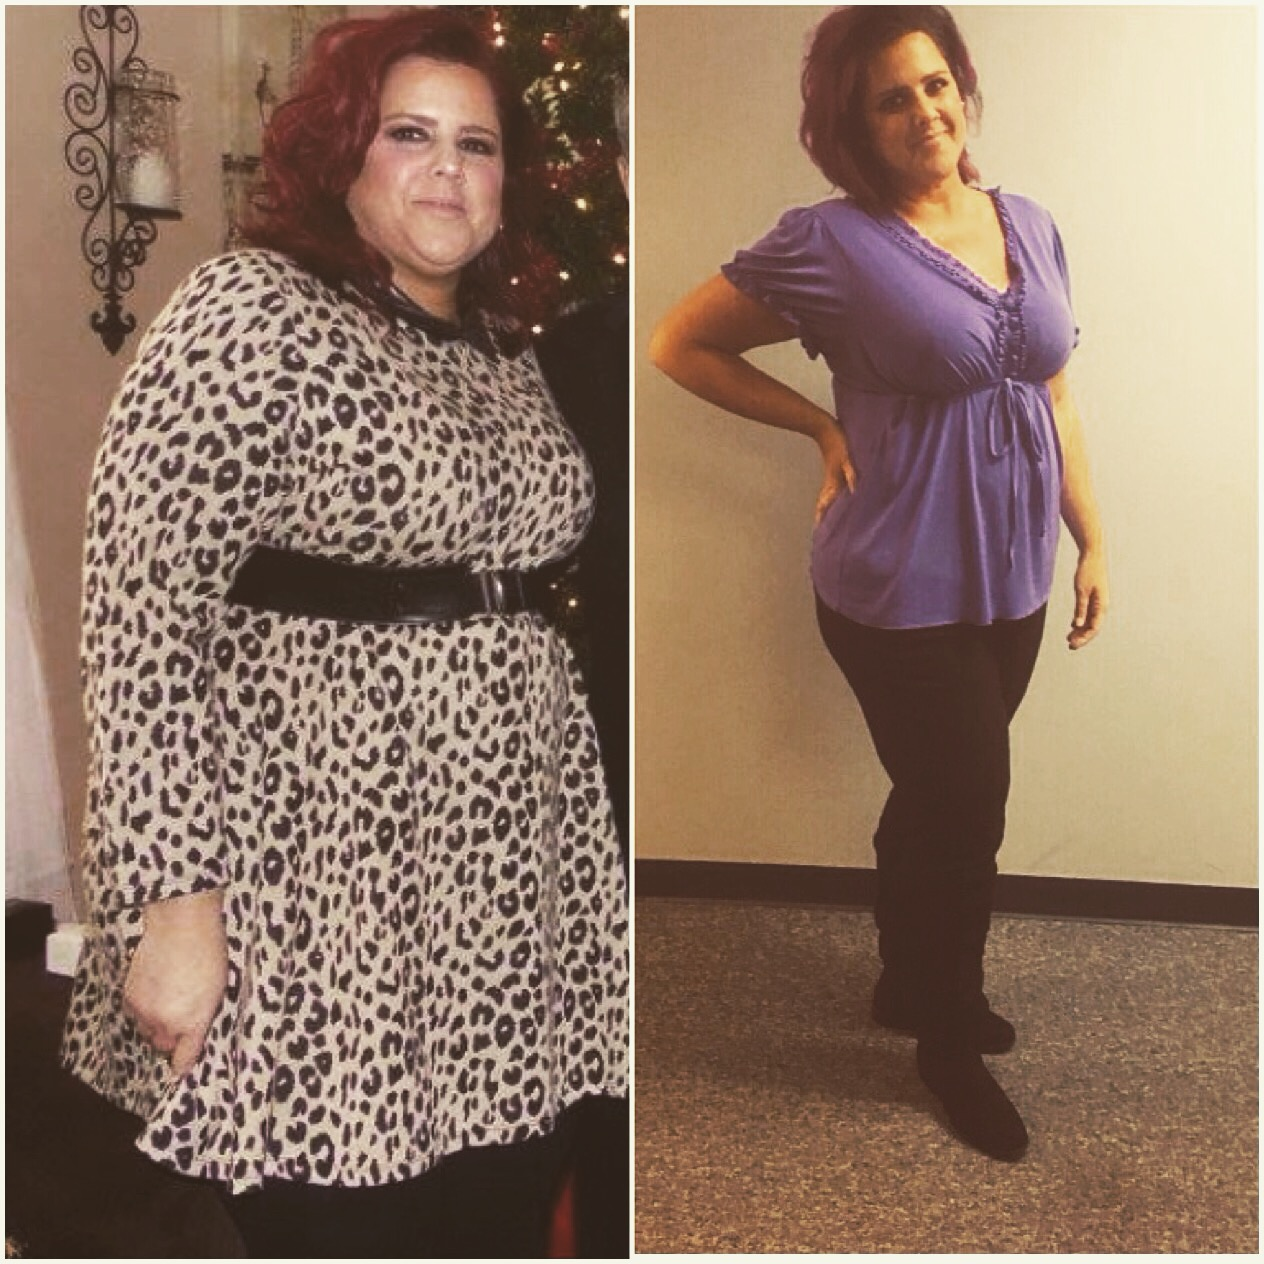 Karen lost 78 pounds! See my before and after weight loss pictures, and read amazing weight loss success stories from real women and their best weight loss diet plans and programs. Motivation to lose weight with walking and inspiration from before and after weightloss pics and photos.